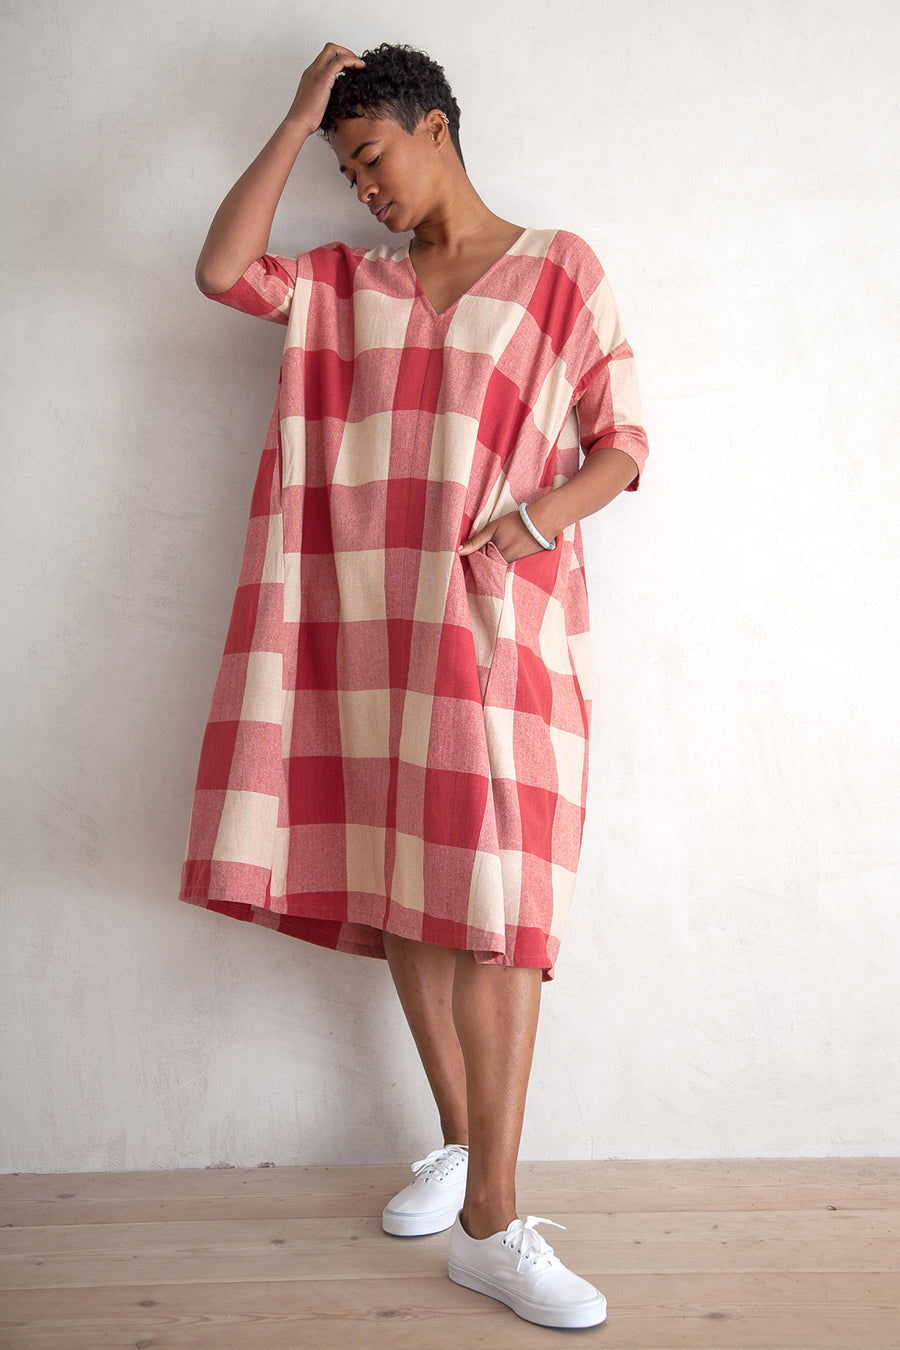 FULL DRESS W/ POCKETS - RASPBERRY GINGHAM